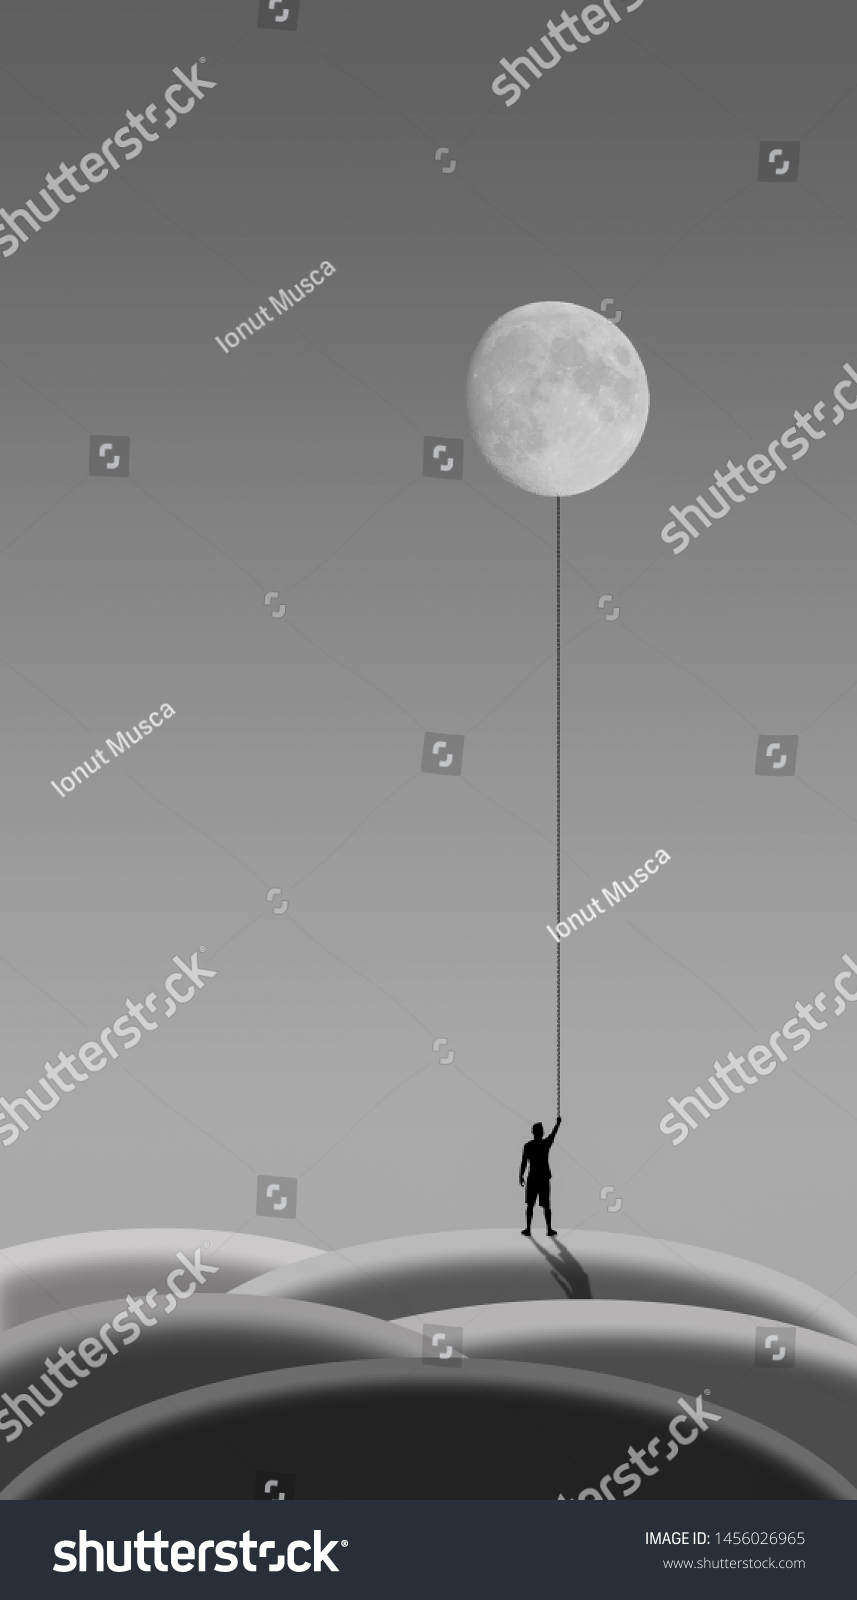 Silhouette Man Holding Moon Monochrome Illustration Stock